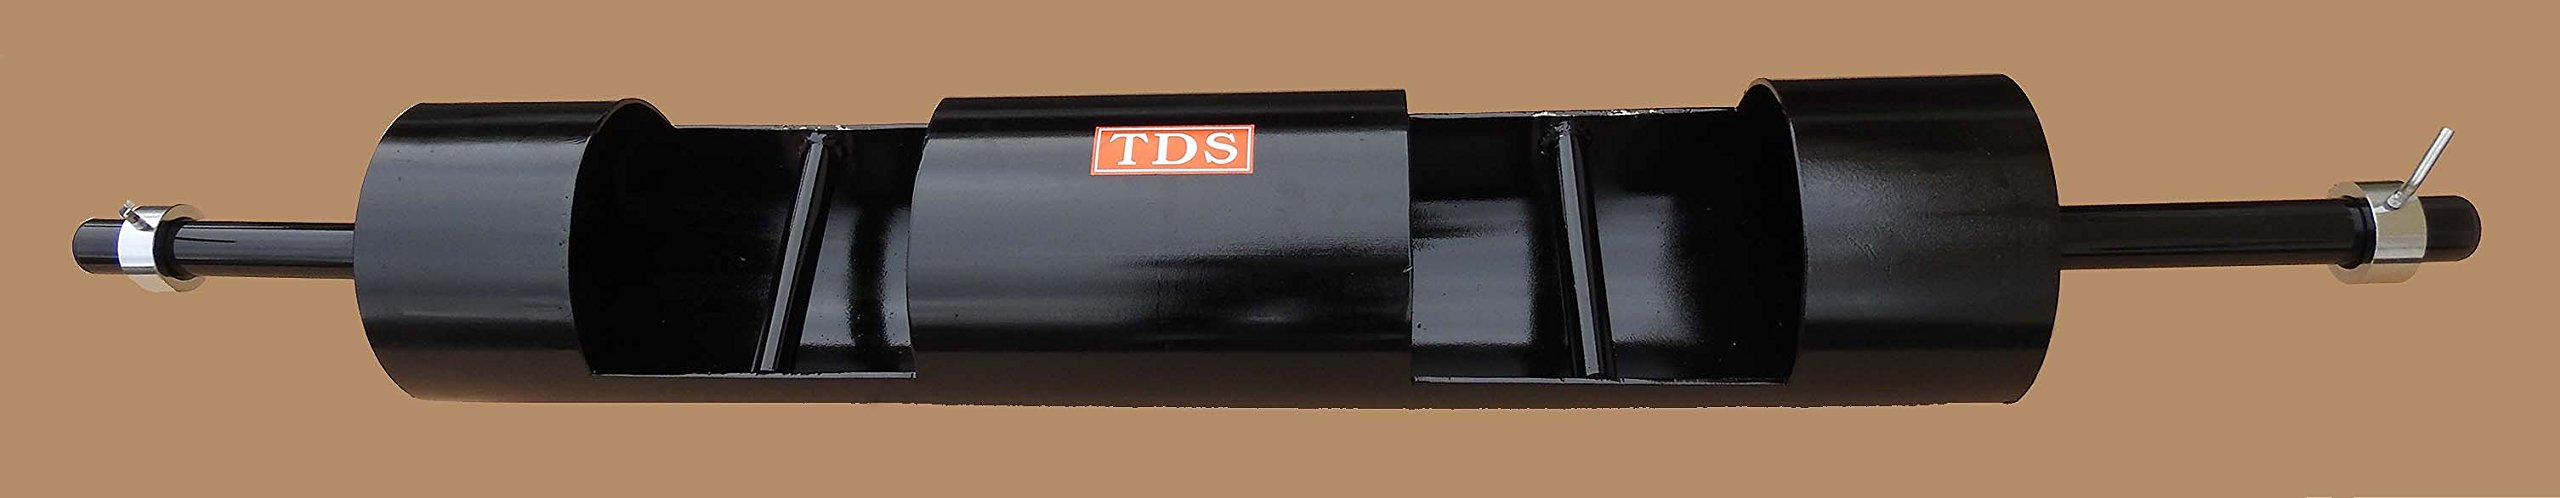 "TDS 8.5"" Dia x 48"" long Strongman Log to build extreme strength, Endurance and CrossFit workout. Proudly MADE IN THE USA in our 110000sq. facility, Elmira, NY, USA by TDS"